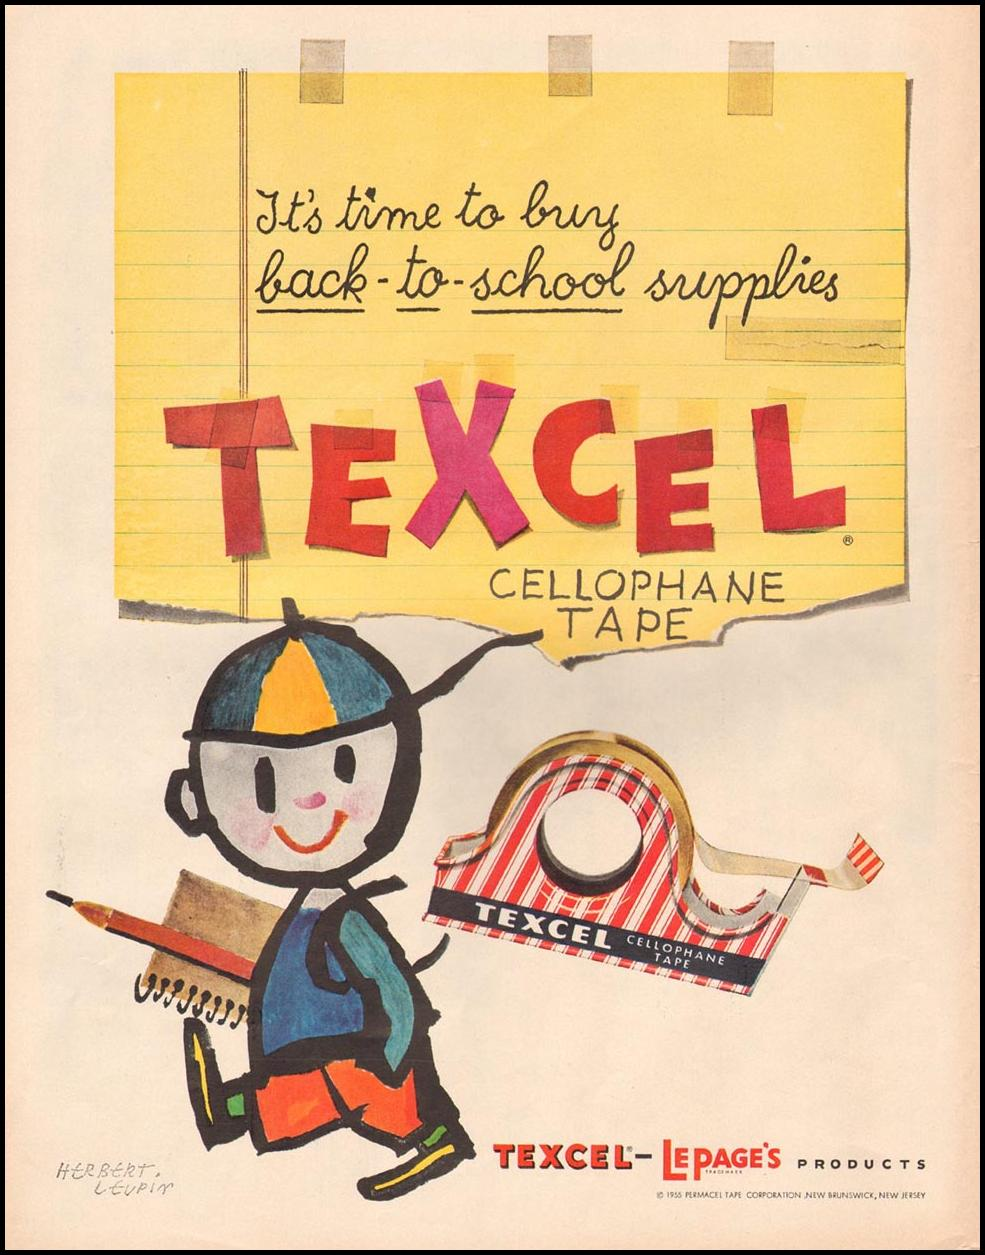 TEXCEL CELLOPHANE TAPE LIFE 09/09/1957 p. 120